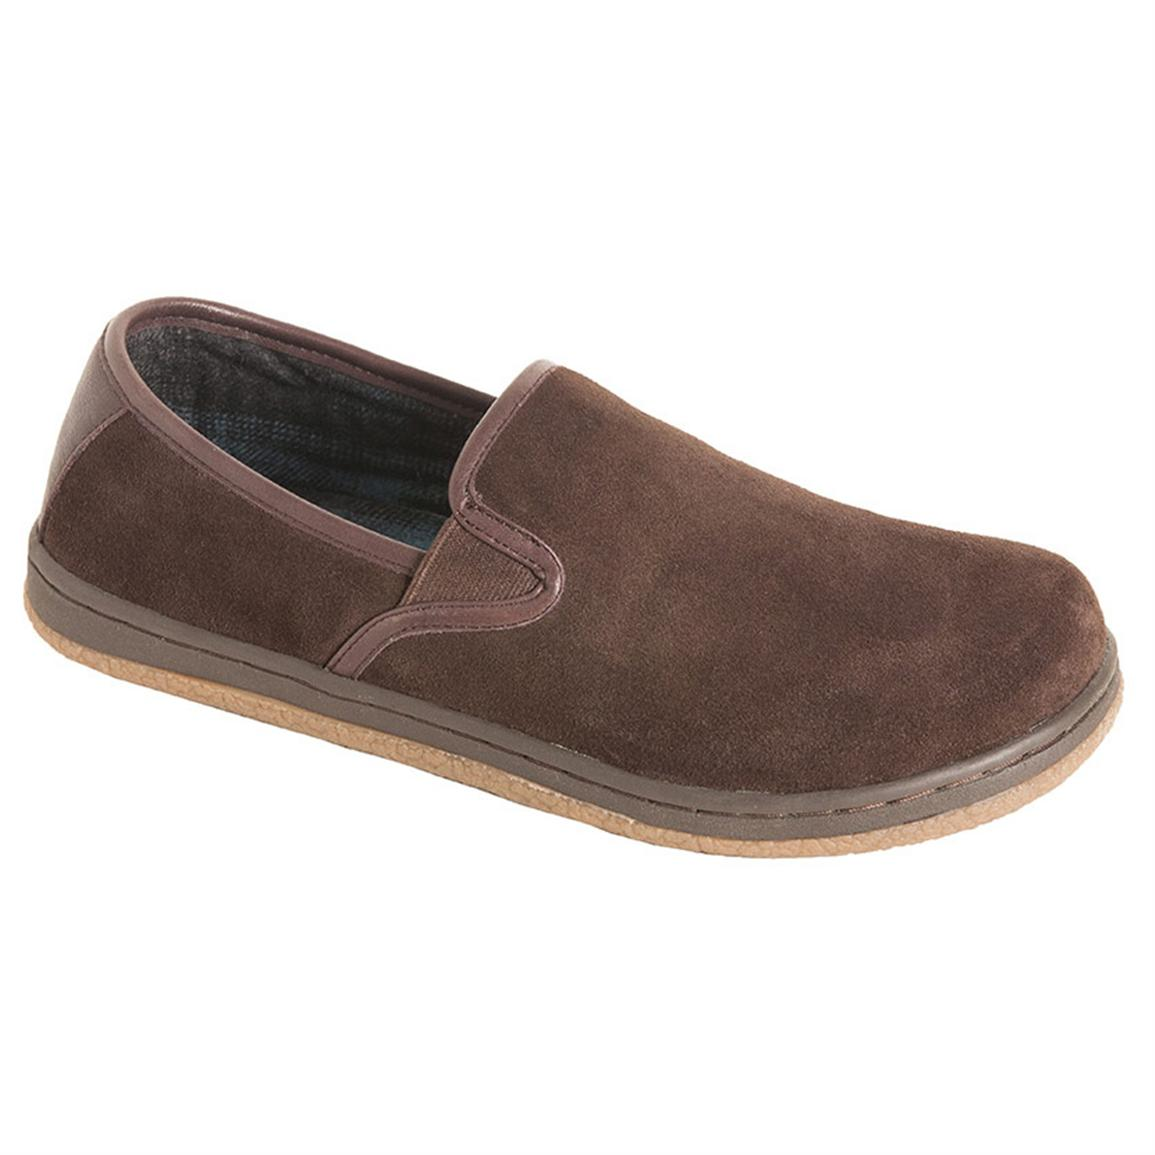 Men's L. B. Evans® Reese Slippers, Chocolate